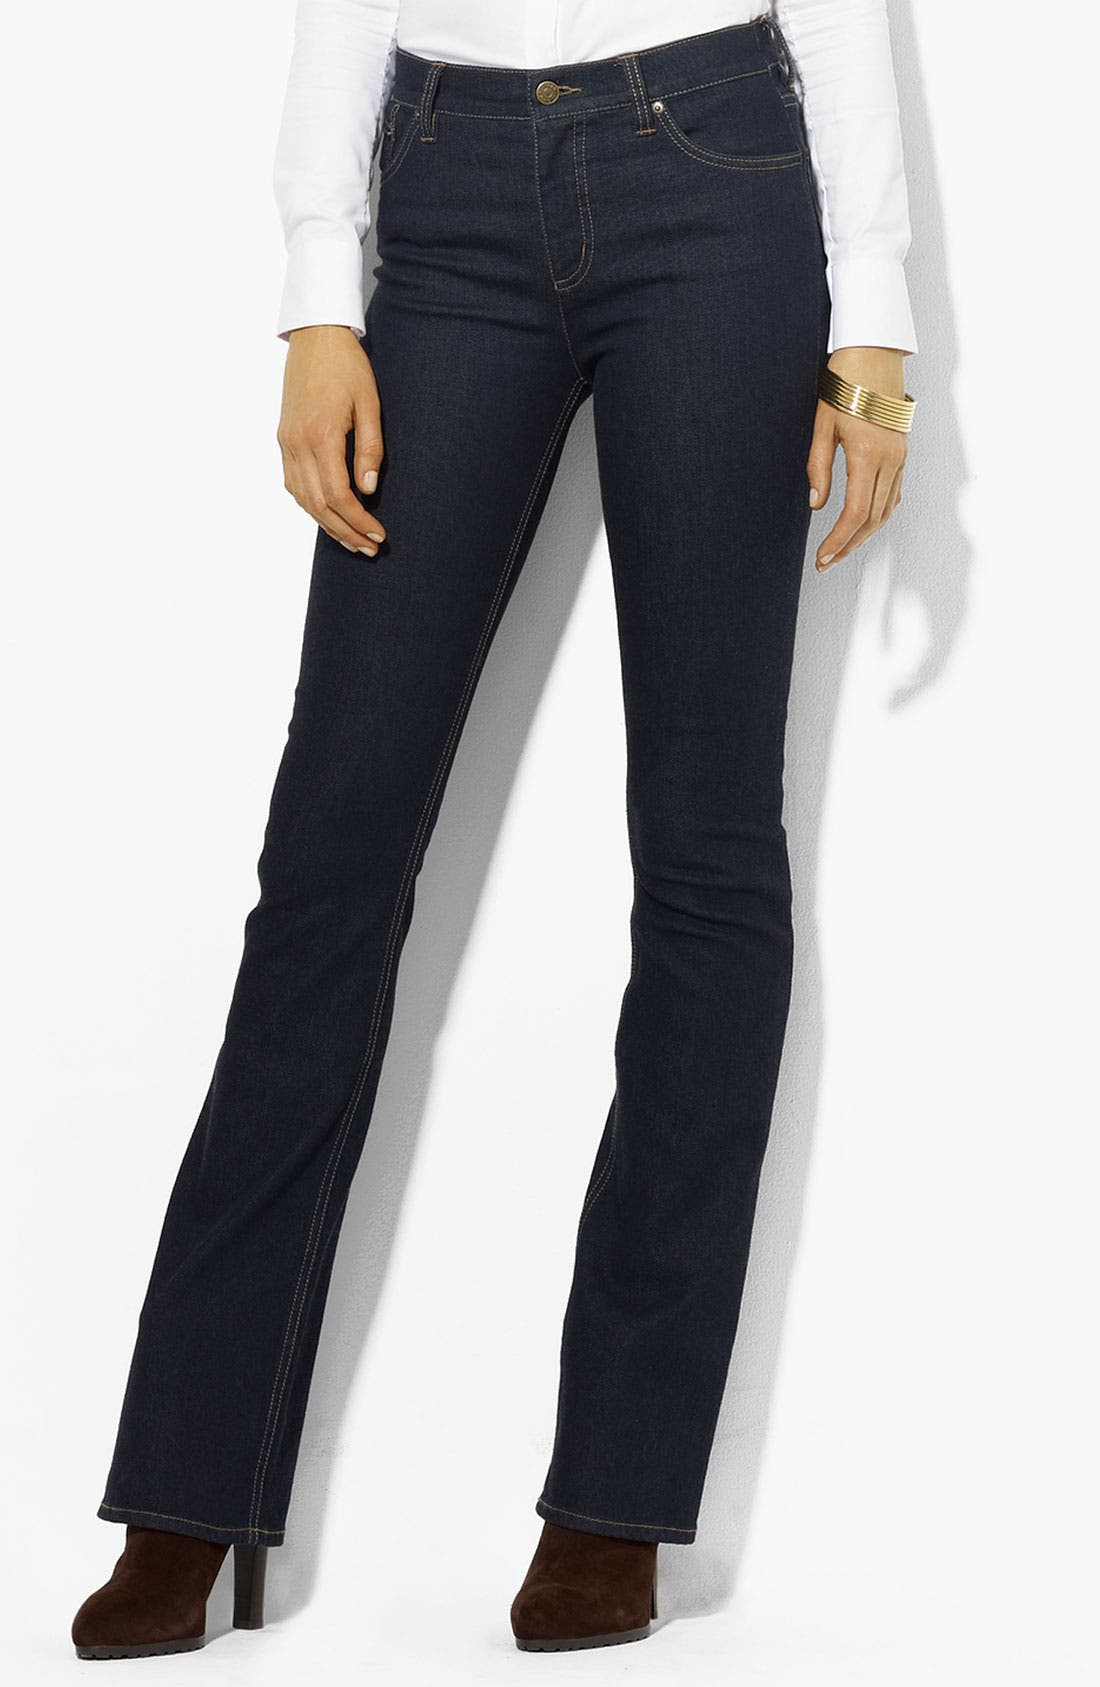 Alternate Image 1 Selected - Lauren Ralph Lauren Slimming Bootcut Jeans (Petite) (Online Only)